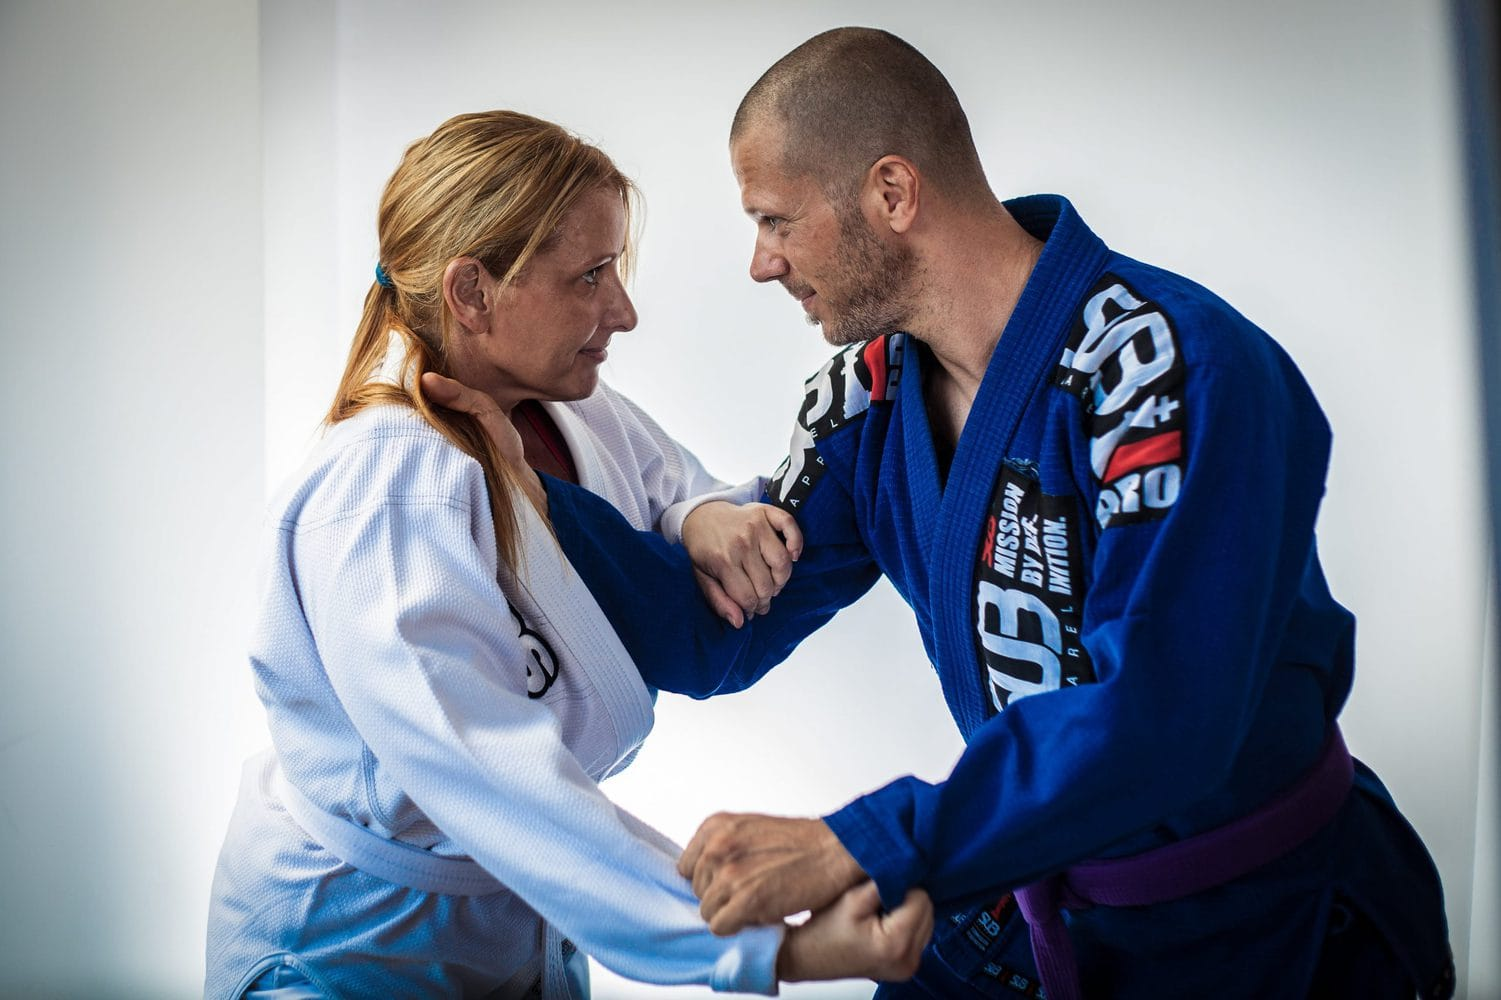 male and femaile BJJ fighters wearing Gi